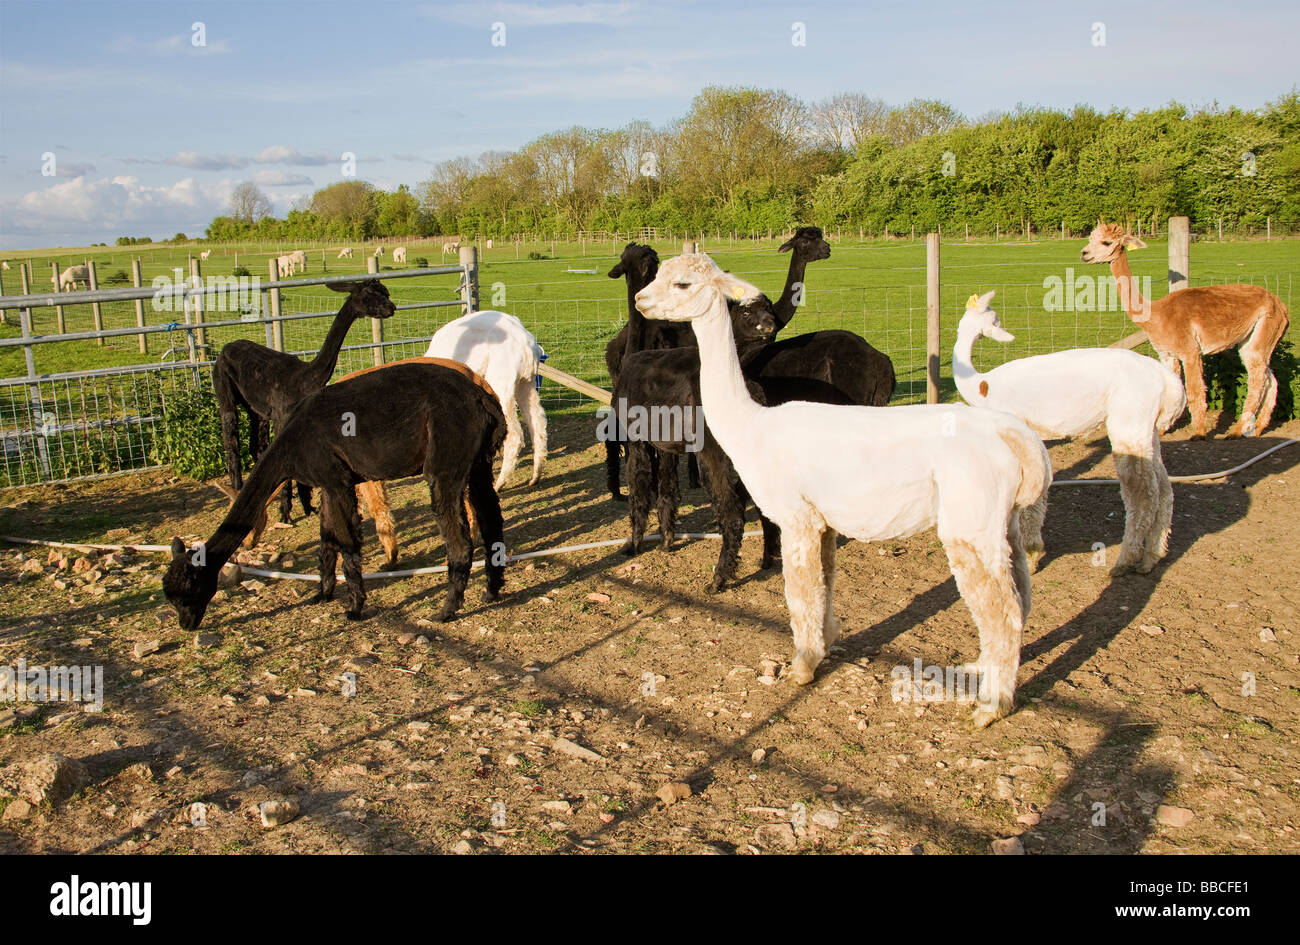 Alpacas, Lama pacos, standing in paddock after being shorn. - Stock Image